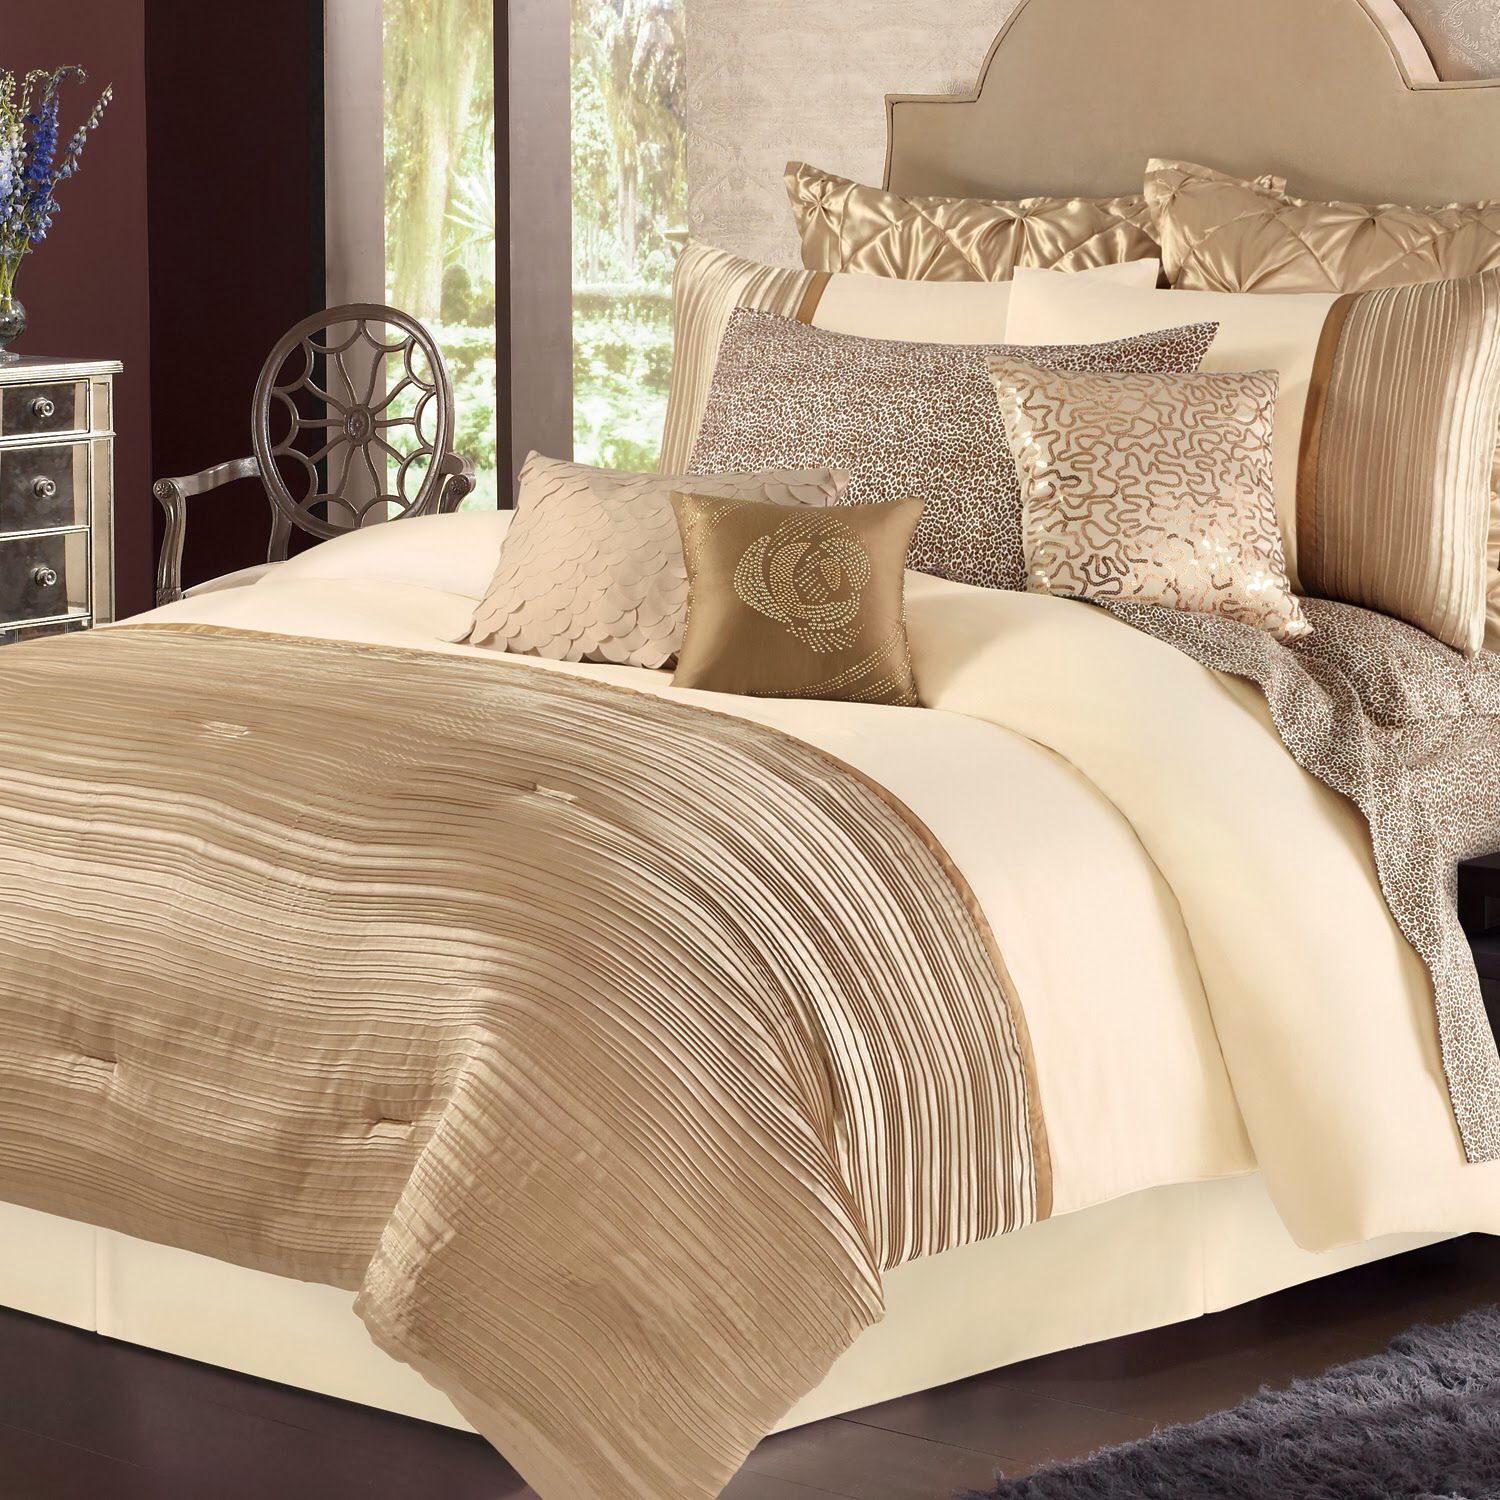 Champagne And Cream Comforter Bedroom Comforter Sets Gold